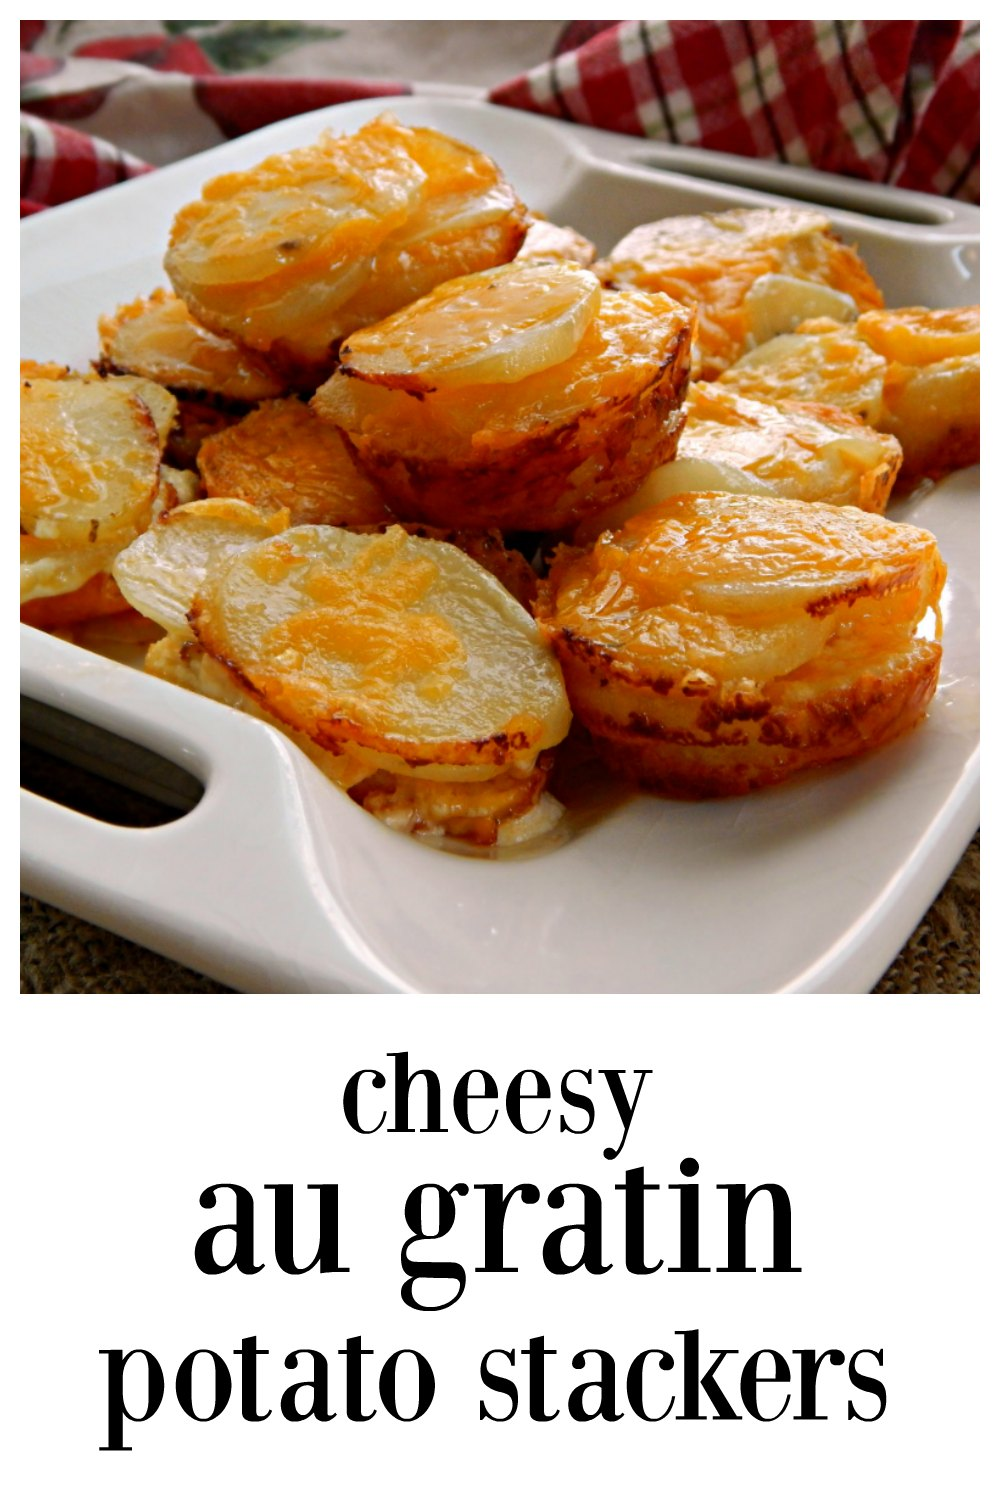 Potato Stackers aren't just cute - these cook quickly and best of all, the method maximizes the ratio of crispy crustiness to cheesy goodness! #AuGratinPotatoes #PotatoStacks #AuGratinPotatoStacks #CheesyPotatoes